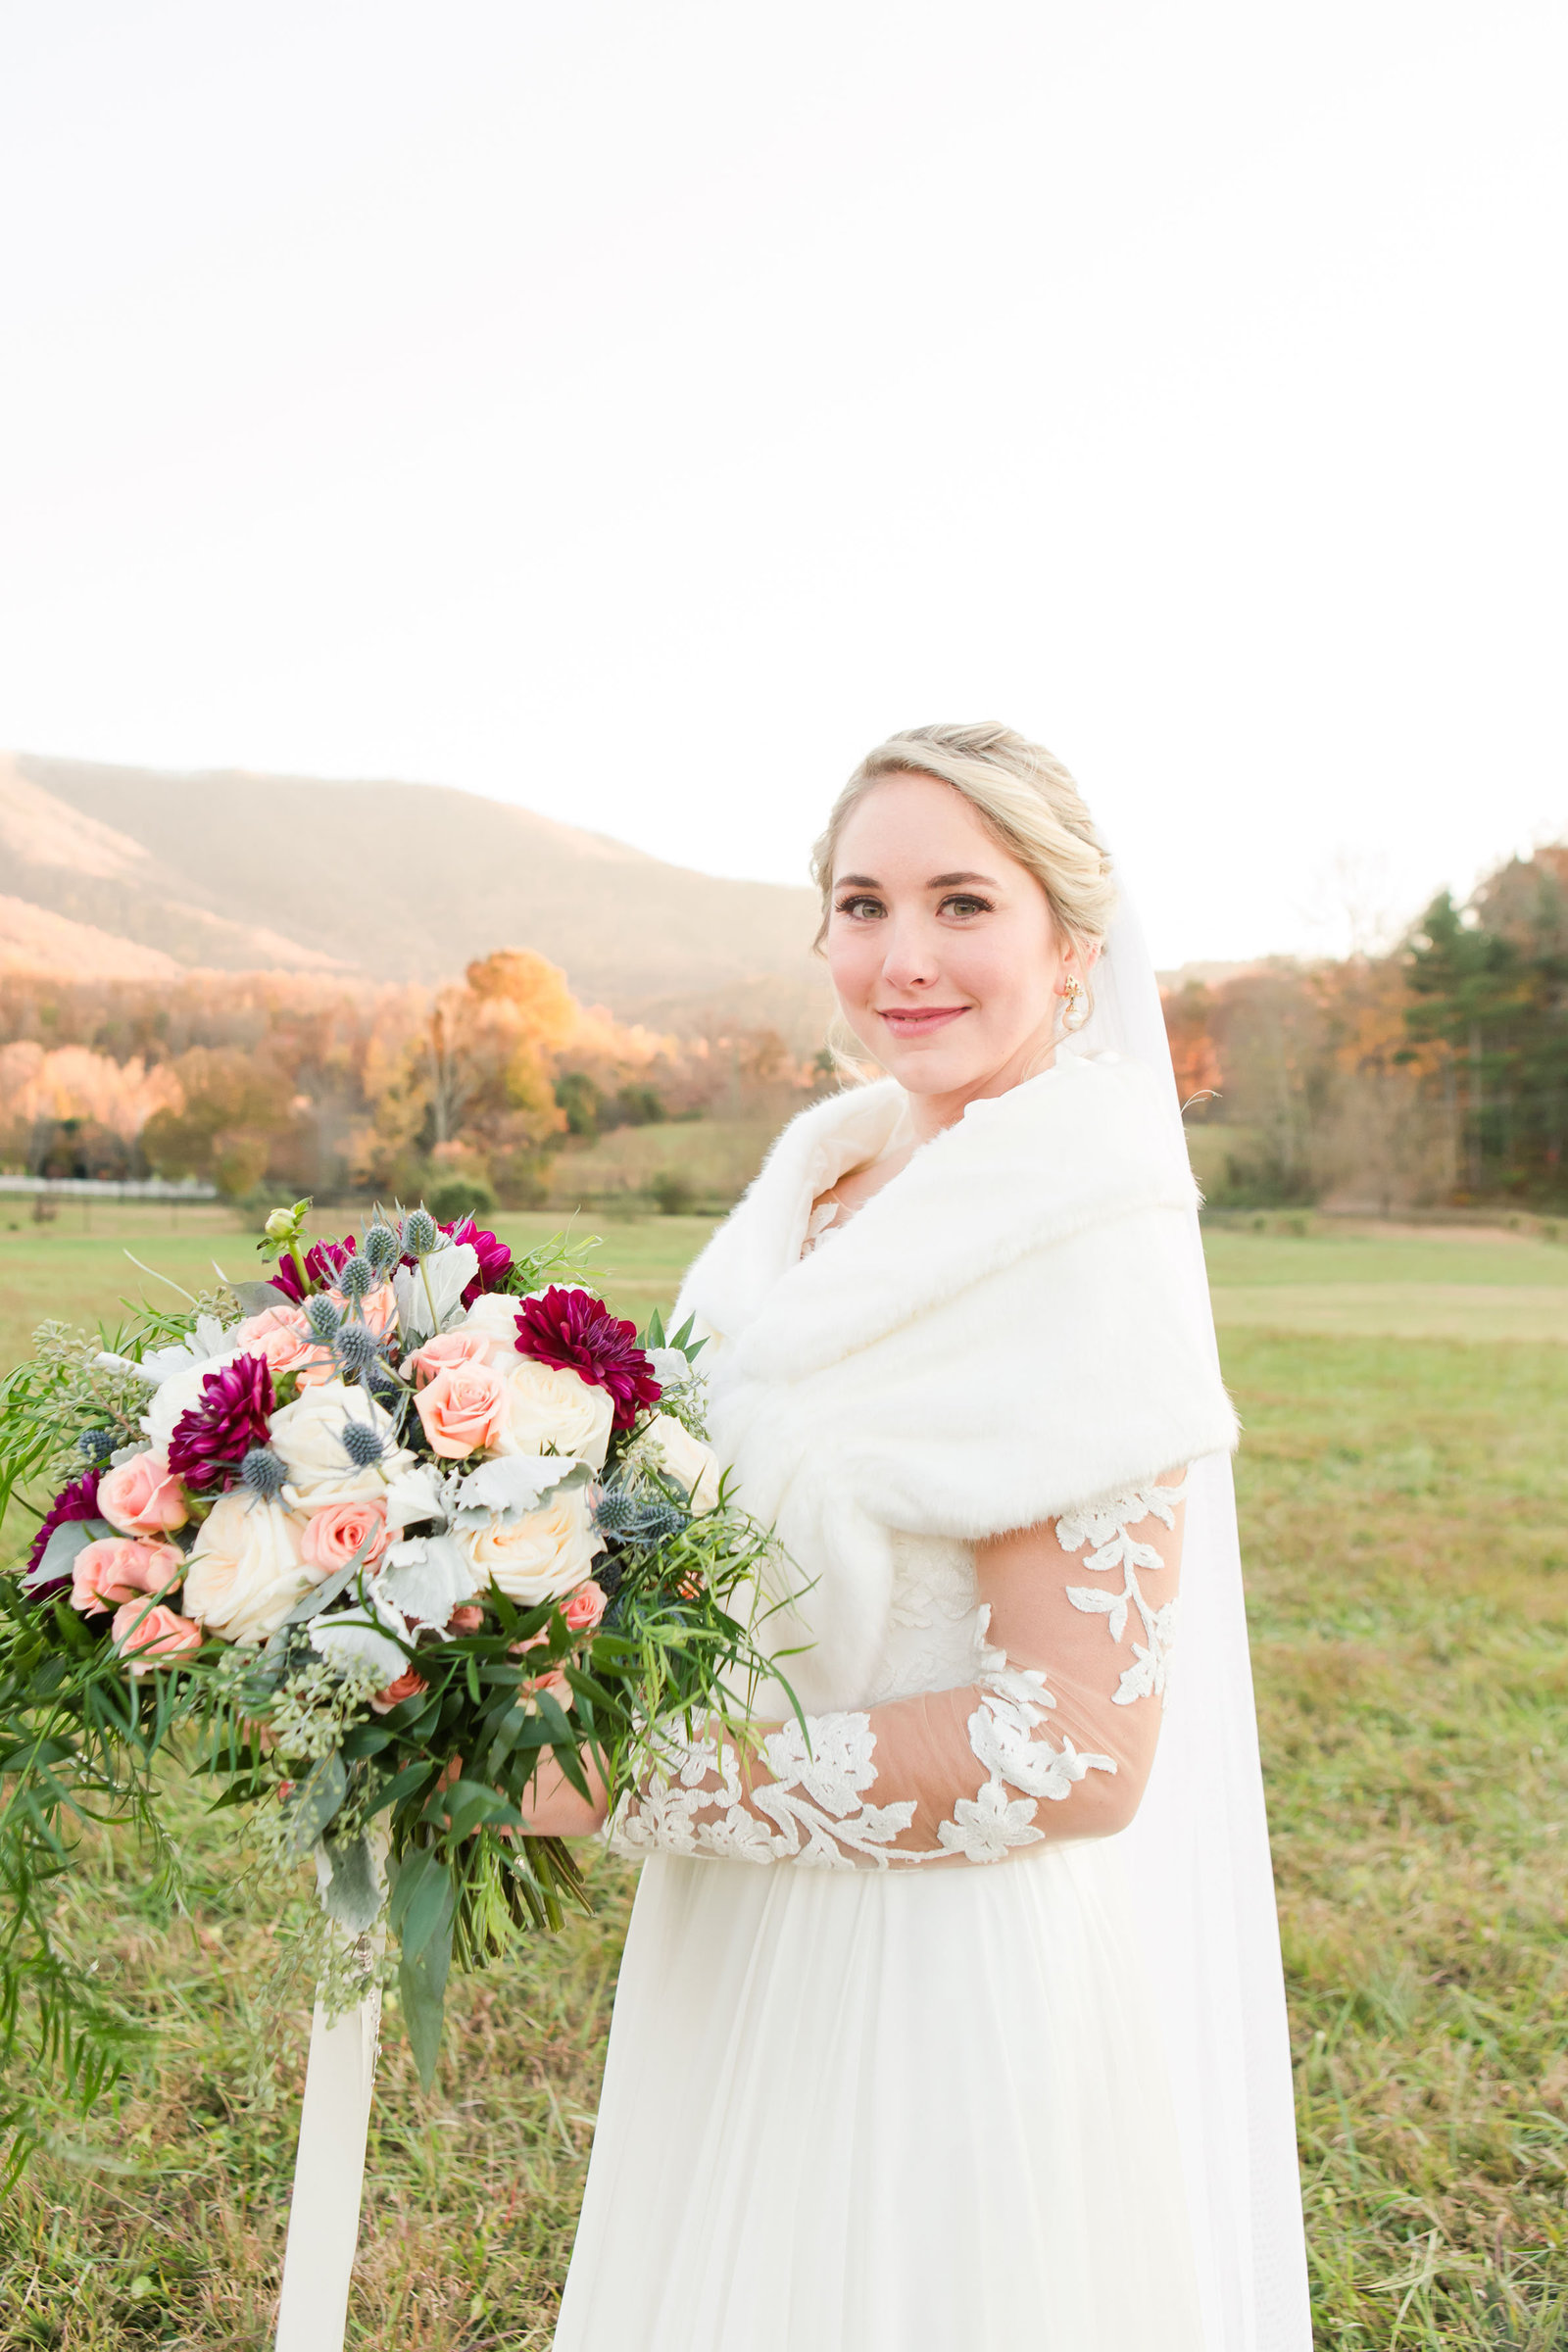 akingslodgeweddingpigeonforgeweddingsmokymountainsweddingmikayleeandian102164